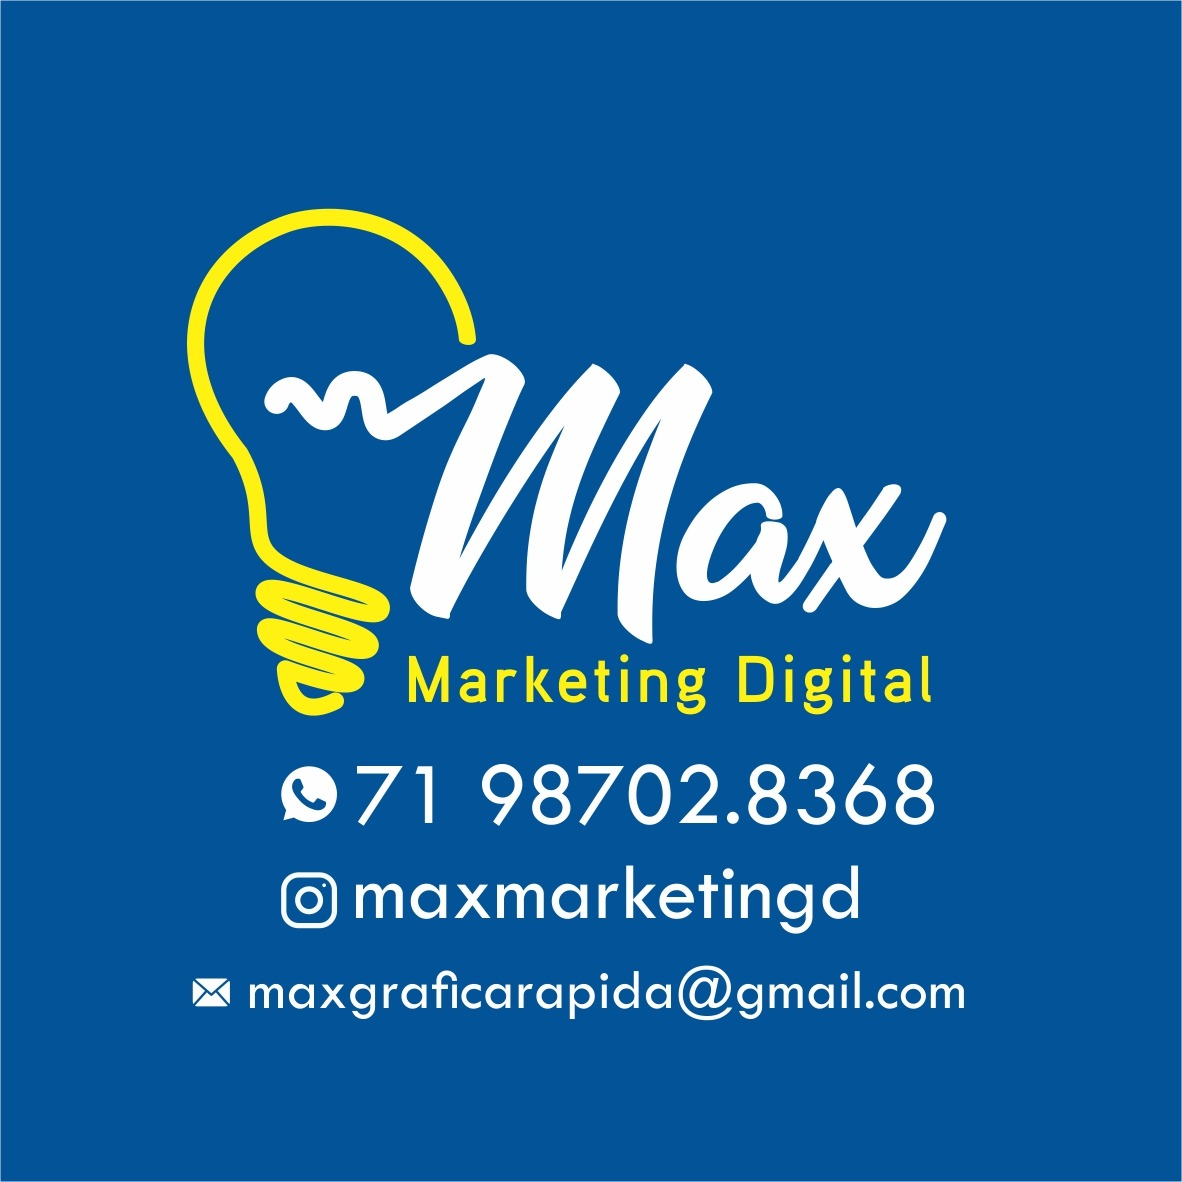 Max Marketing Digital